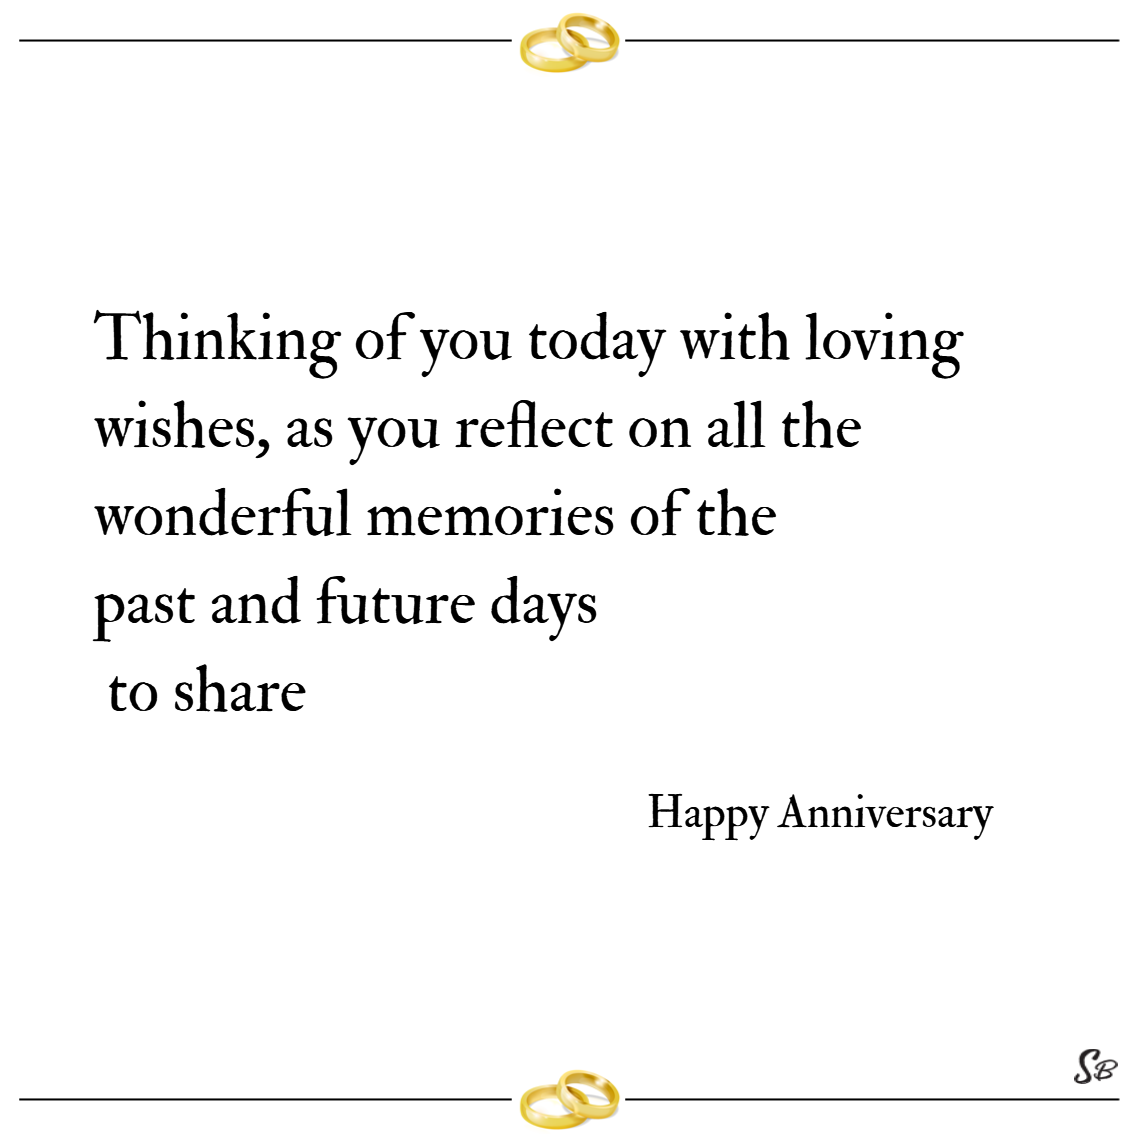 Thinking of you today with loving wishes, as you reflect on all the wonderful memories of the past and future days to share. – happy anniversary